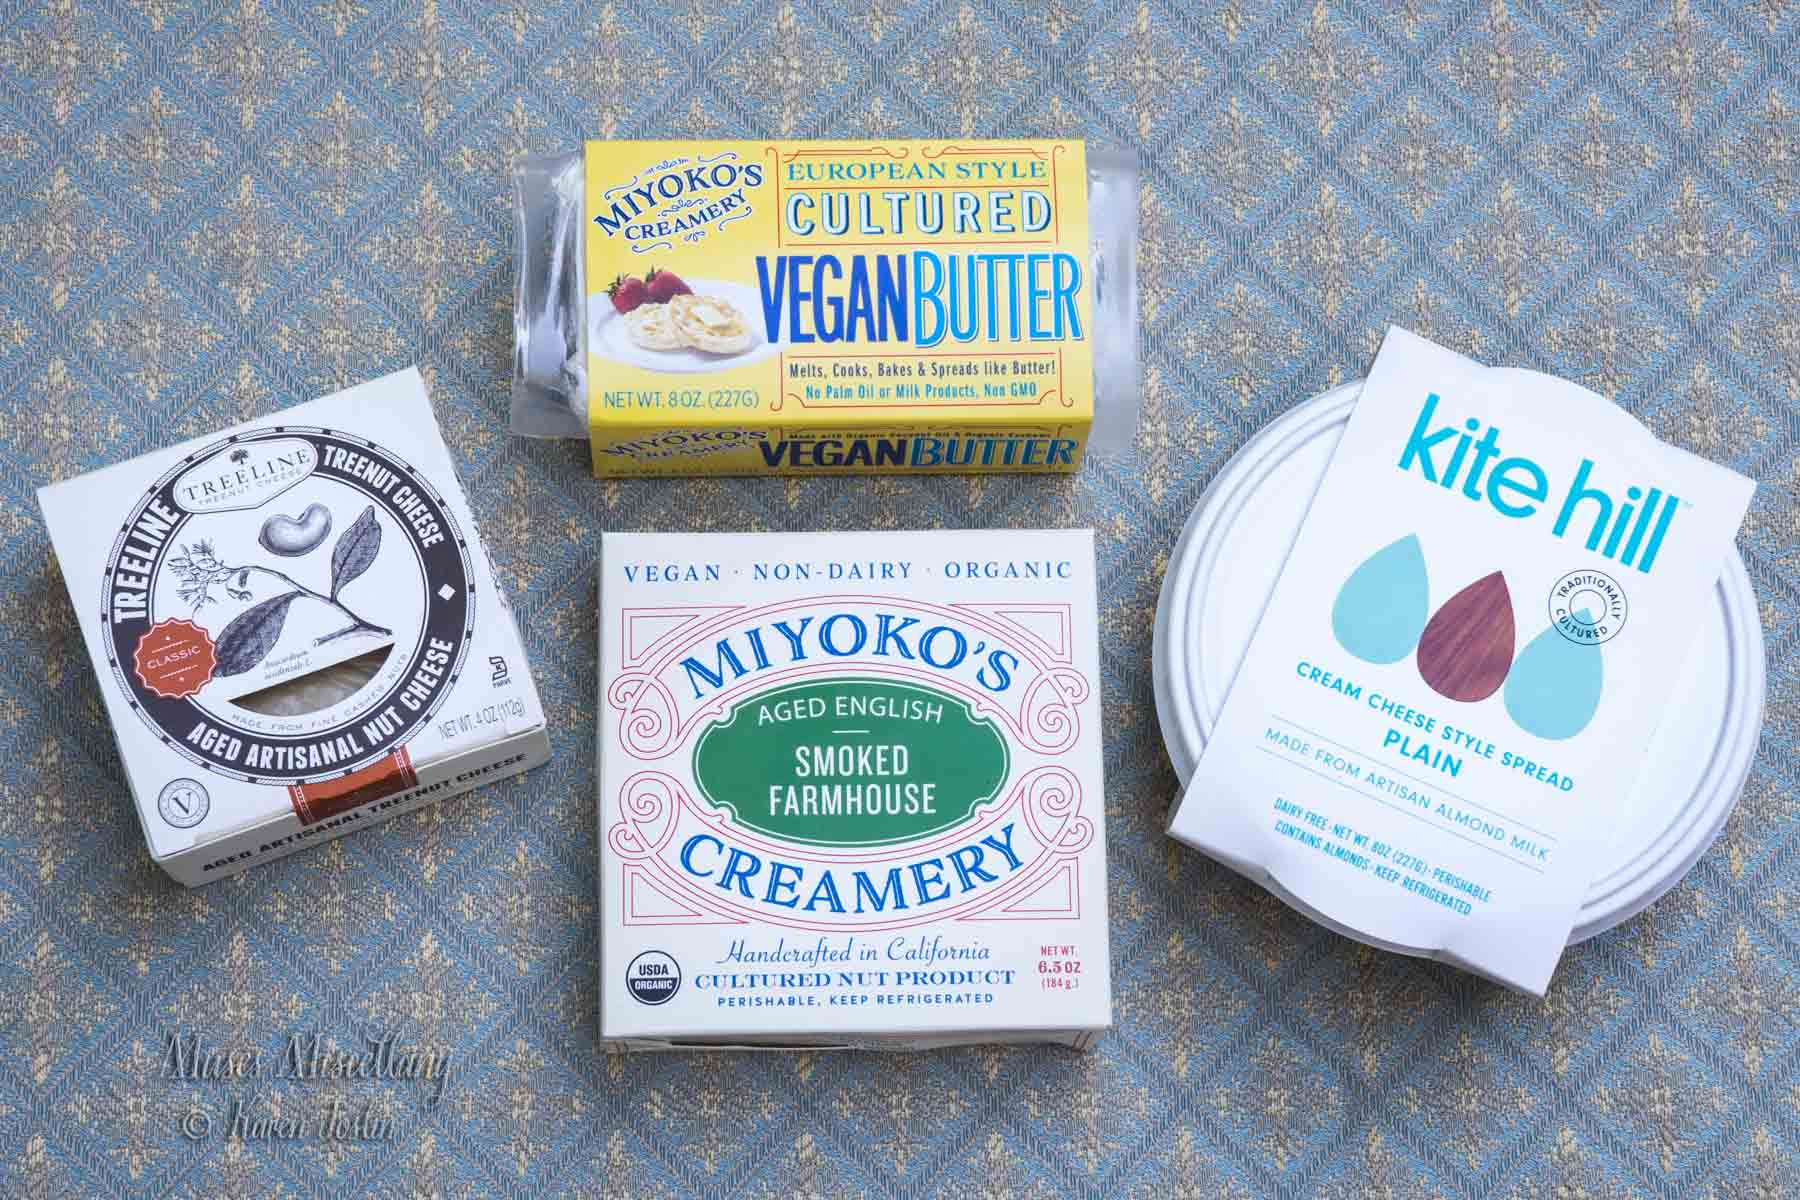 Photo of packaged vegan dairy alternatives, including Treeline Treenut Cheese, Miyoko's Creamery European Style Cultured Vegan Butter, Kite Hill Plain Cream Cheese, and Miyoko's Creamery Smoked Farmhouse cheese.